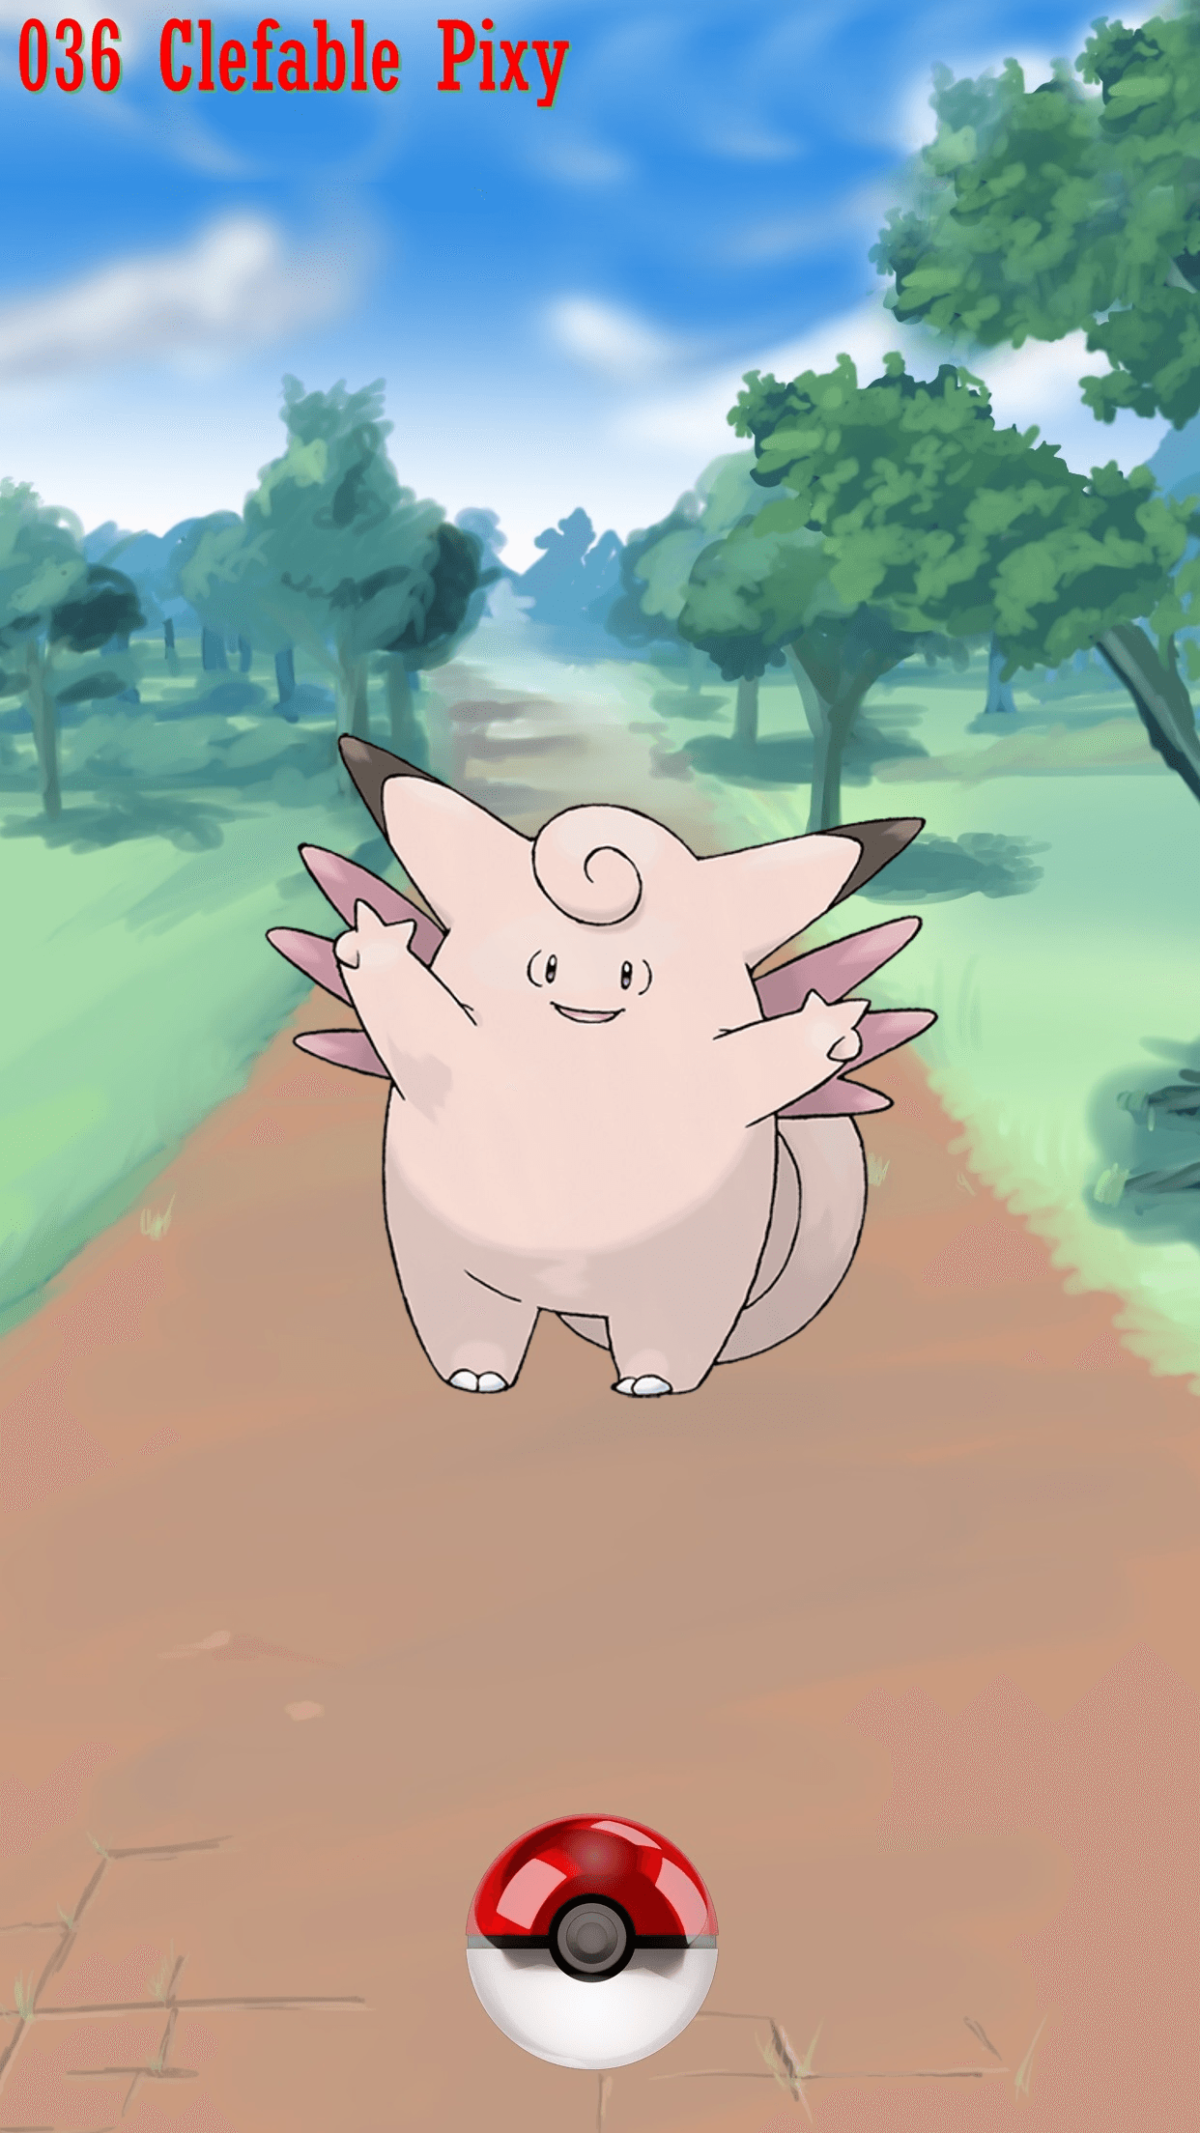 036 Street Pokeball Clefable Pixy | Wallpaper